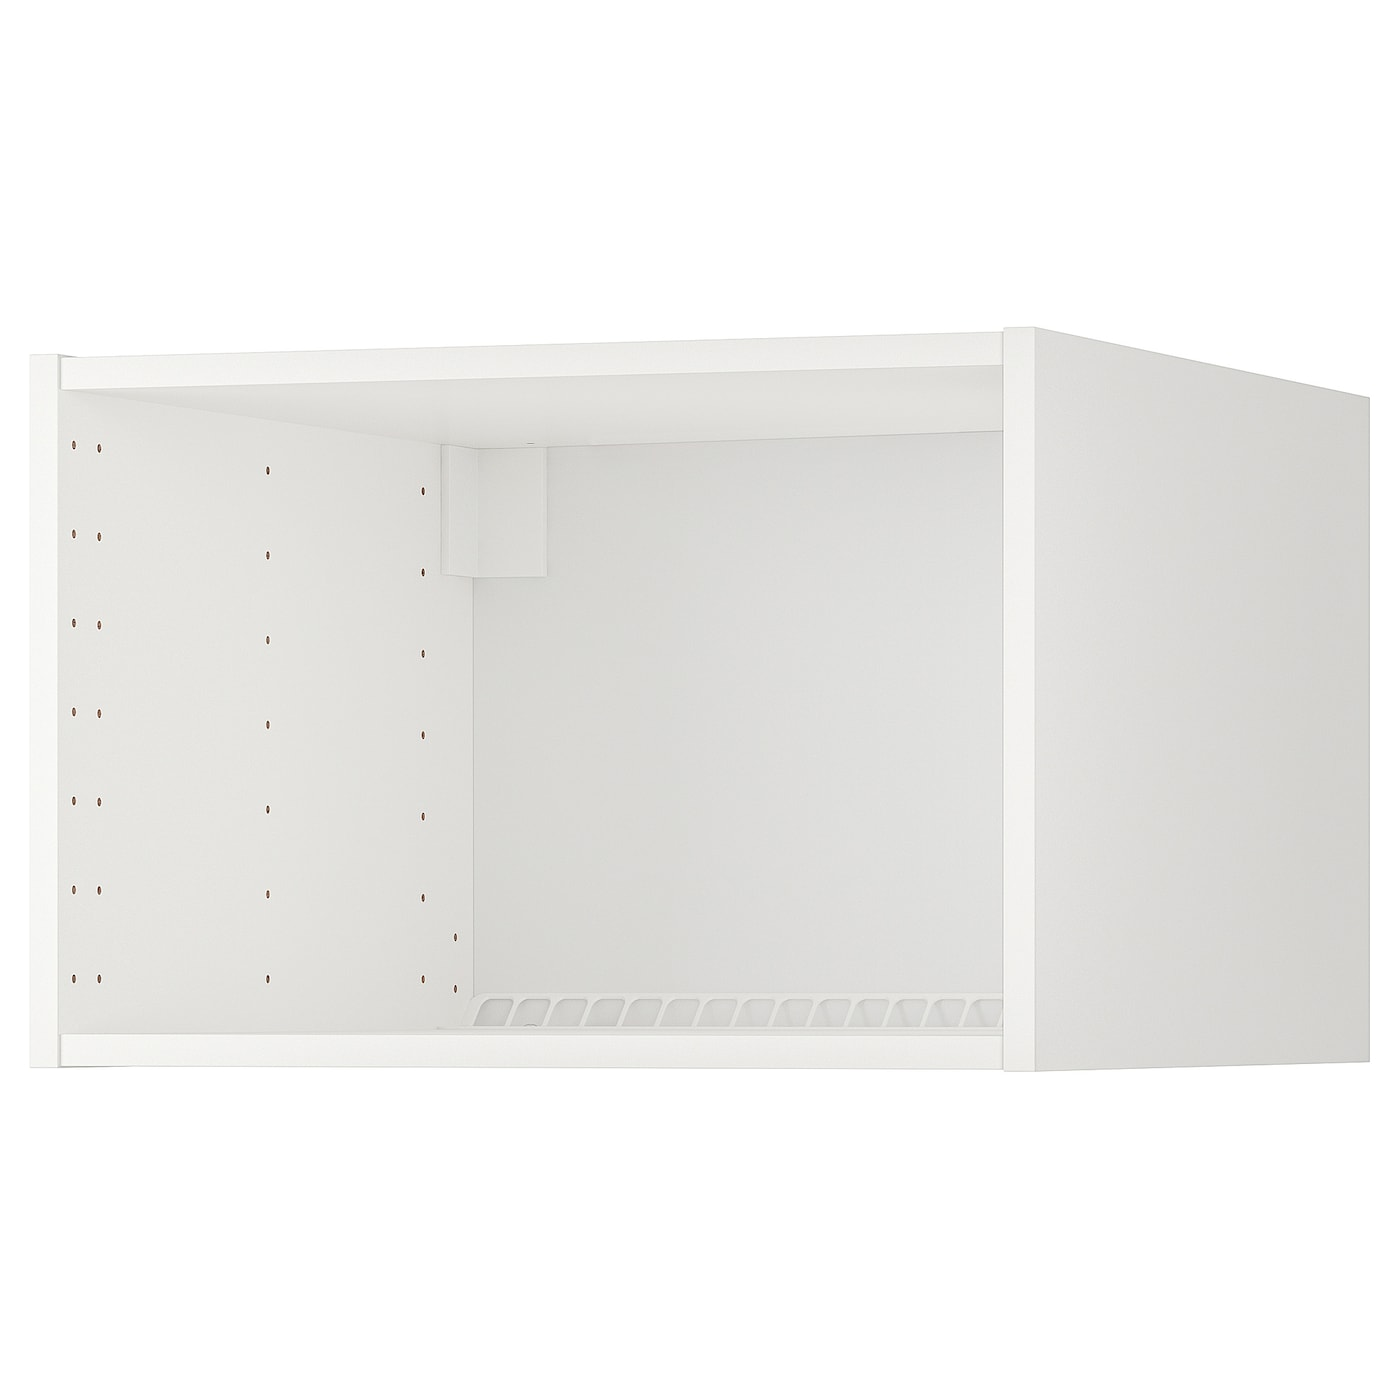 IKEA METOD fridge/freezer top cabinet frame An air duct gives good ventilation.